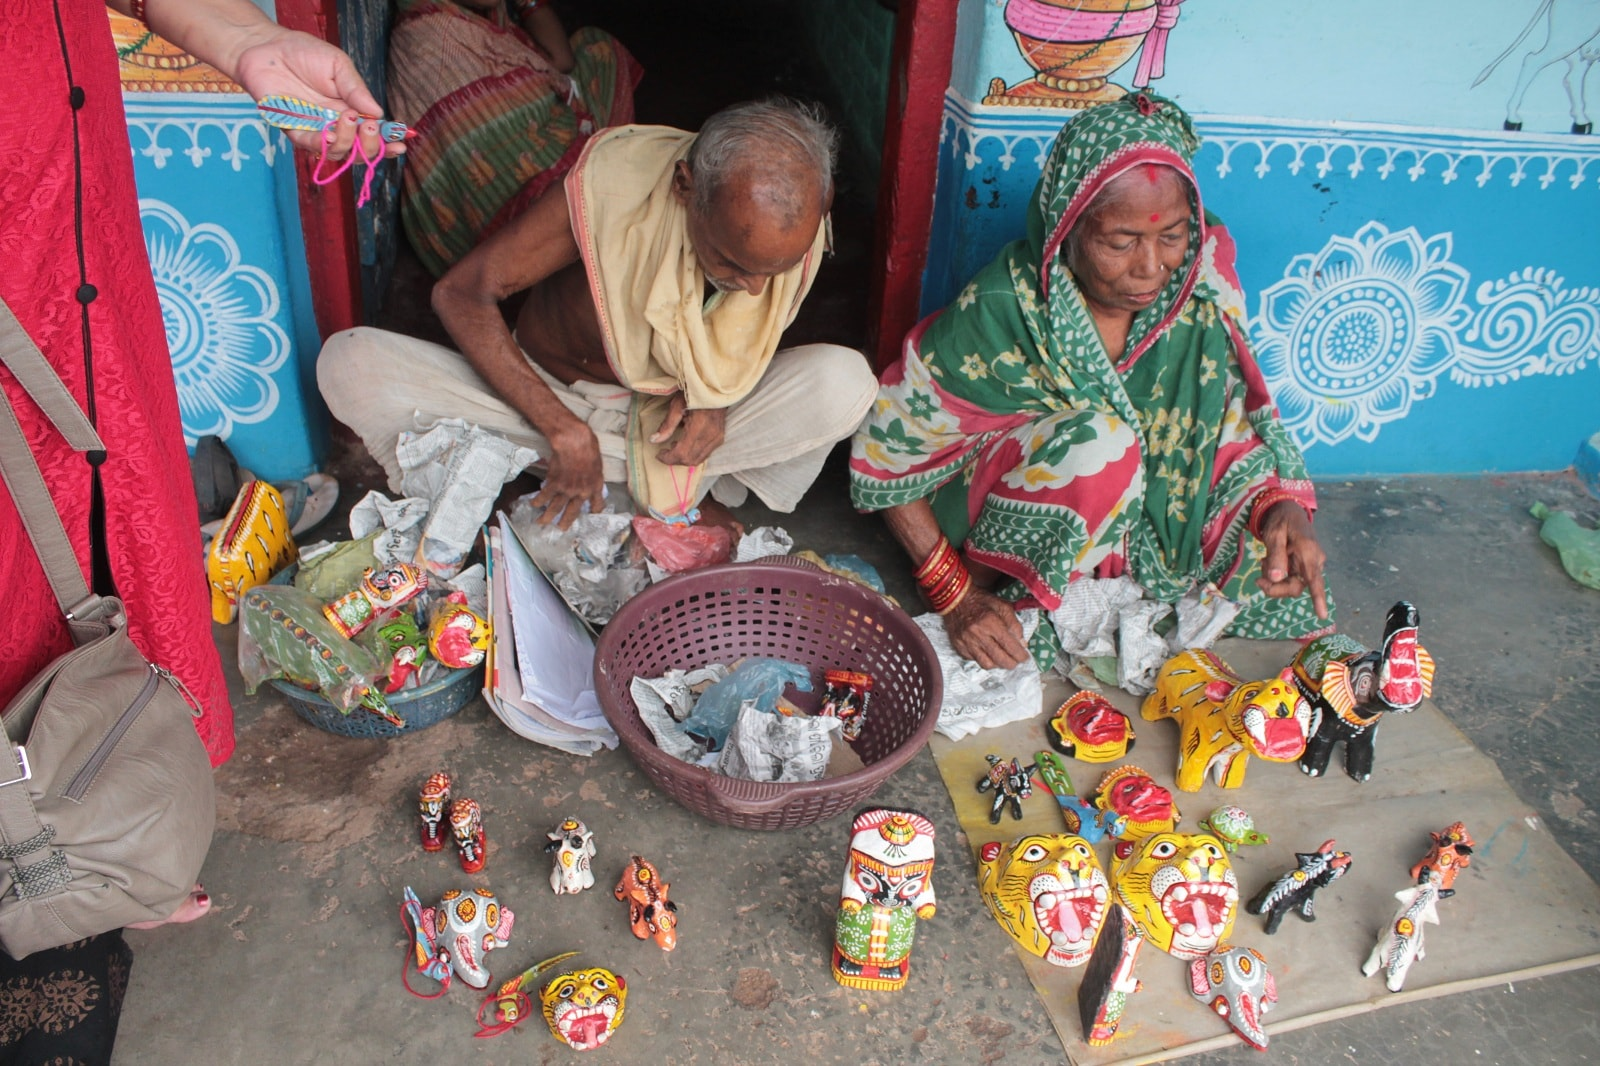 The elderly couple displays their work for customers, which includes paper masks and dolls.